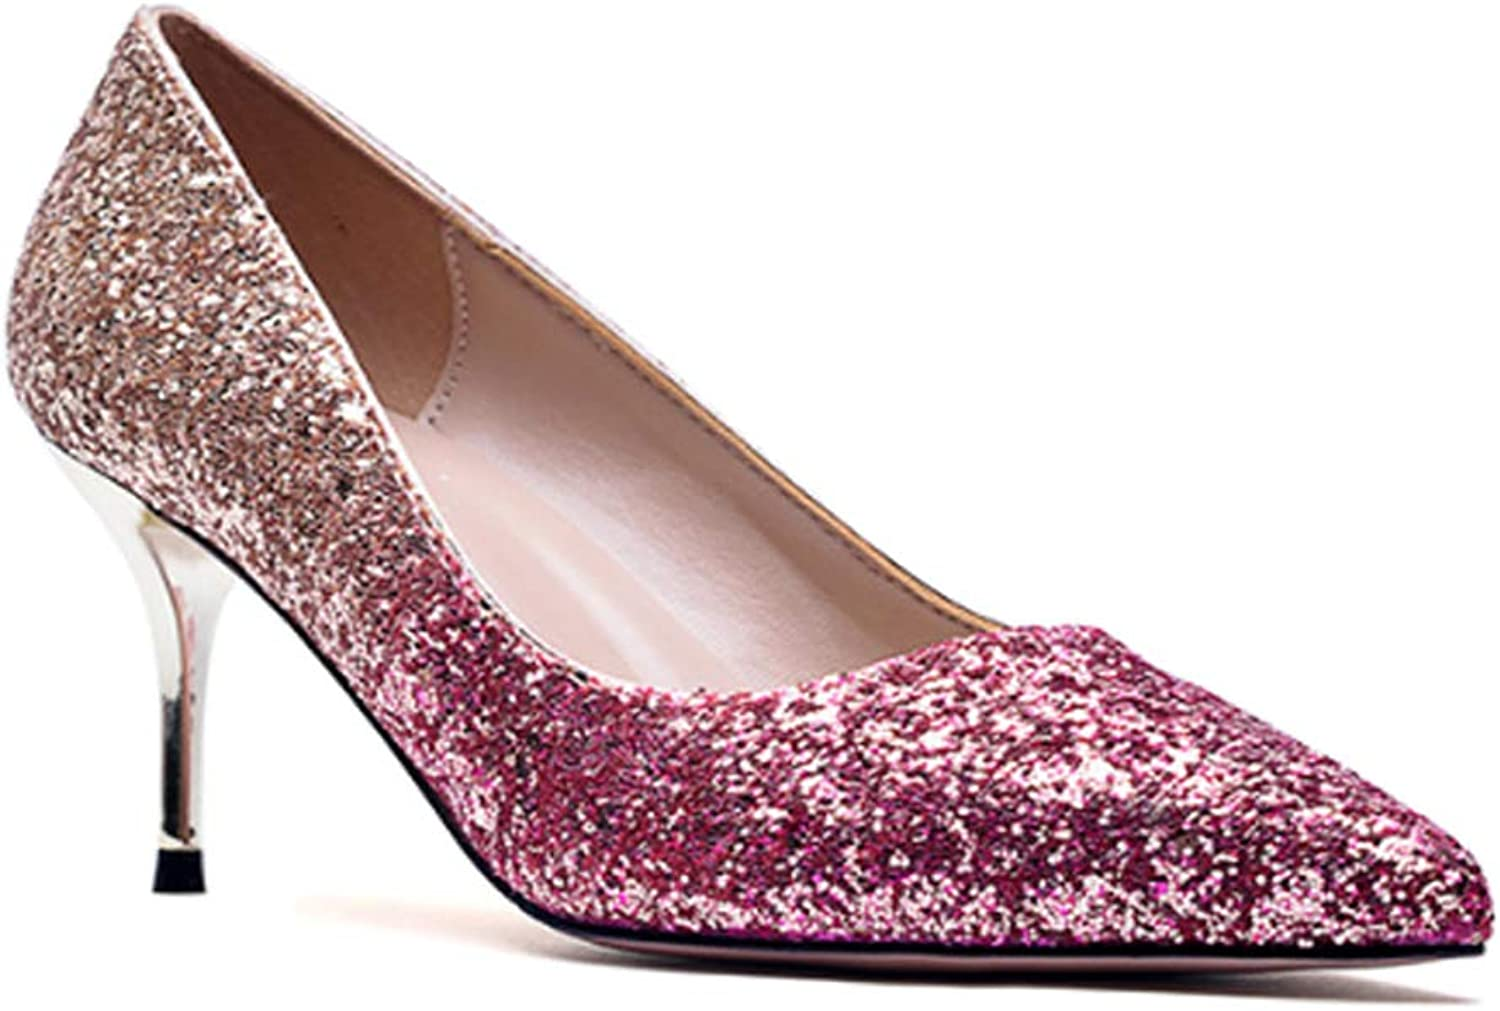 Yudesun Womens Closed Toe High Heels - Ladies Party Prom Evening Super Sparkly Glittery Pointed Crystal Stiletto Heel Court shoes